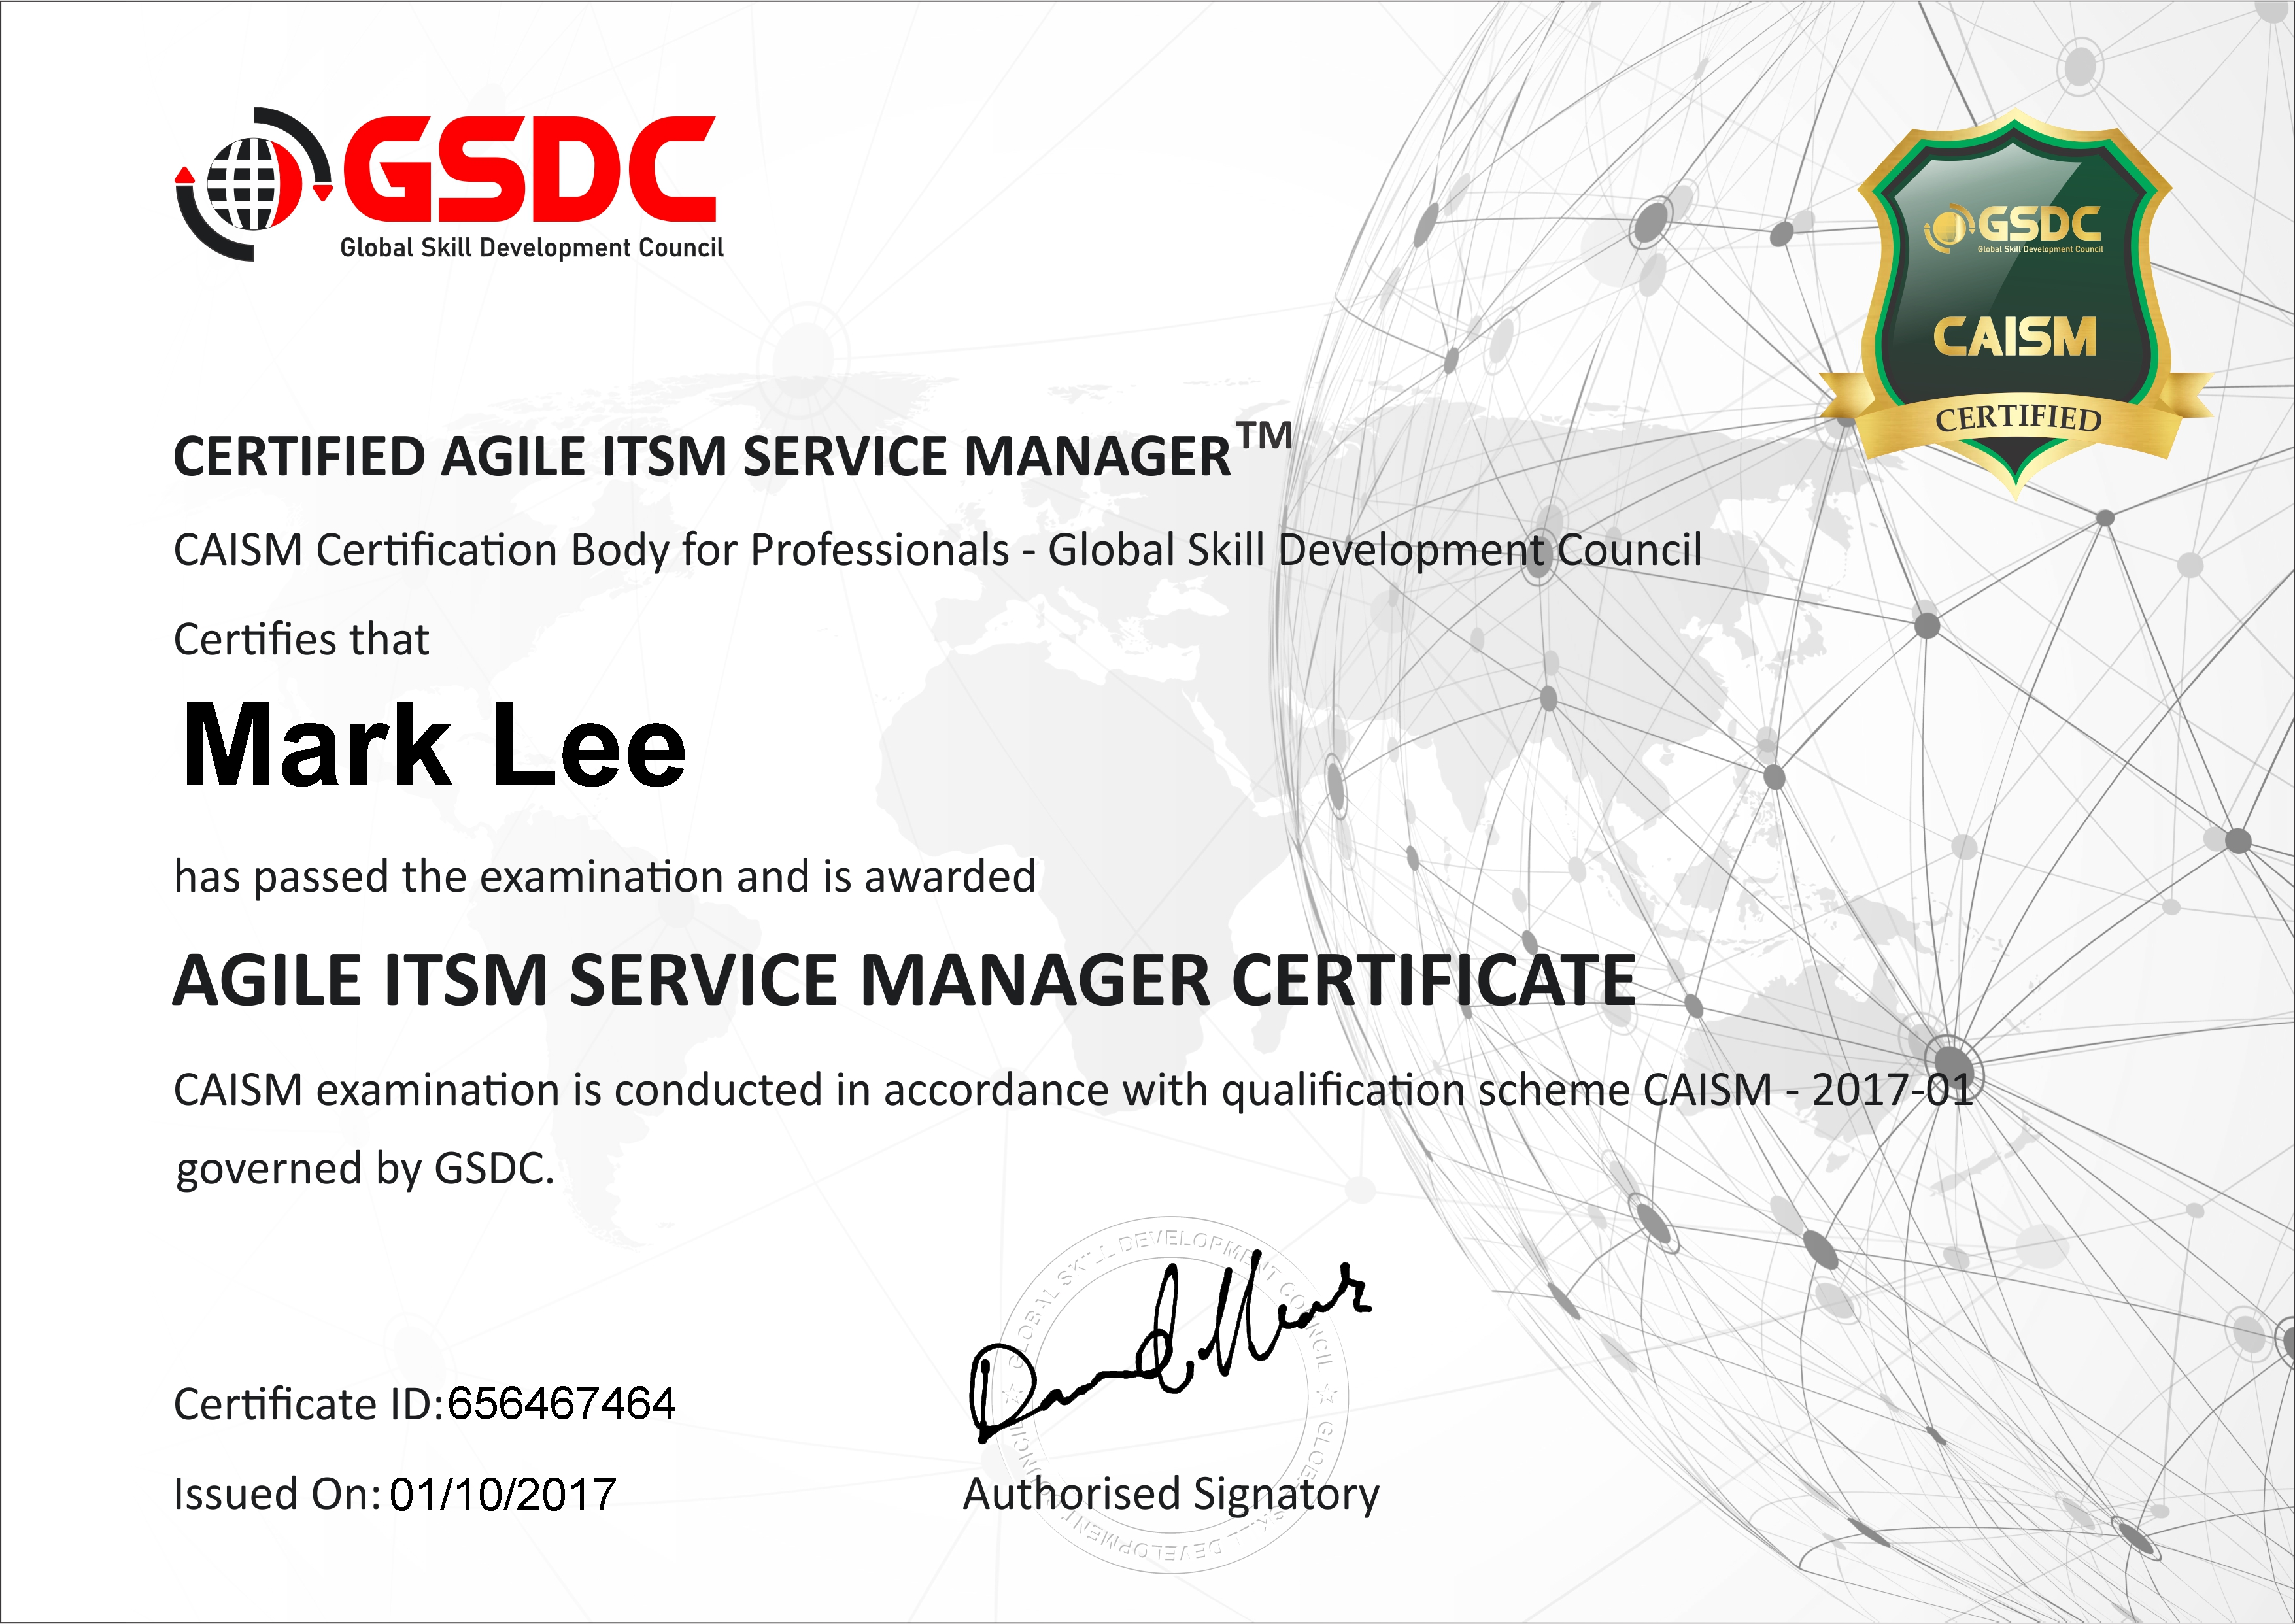 Certified Agile Itsm Manager Caism Gsdcouncil